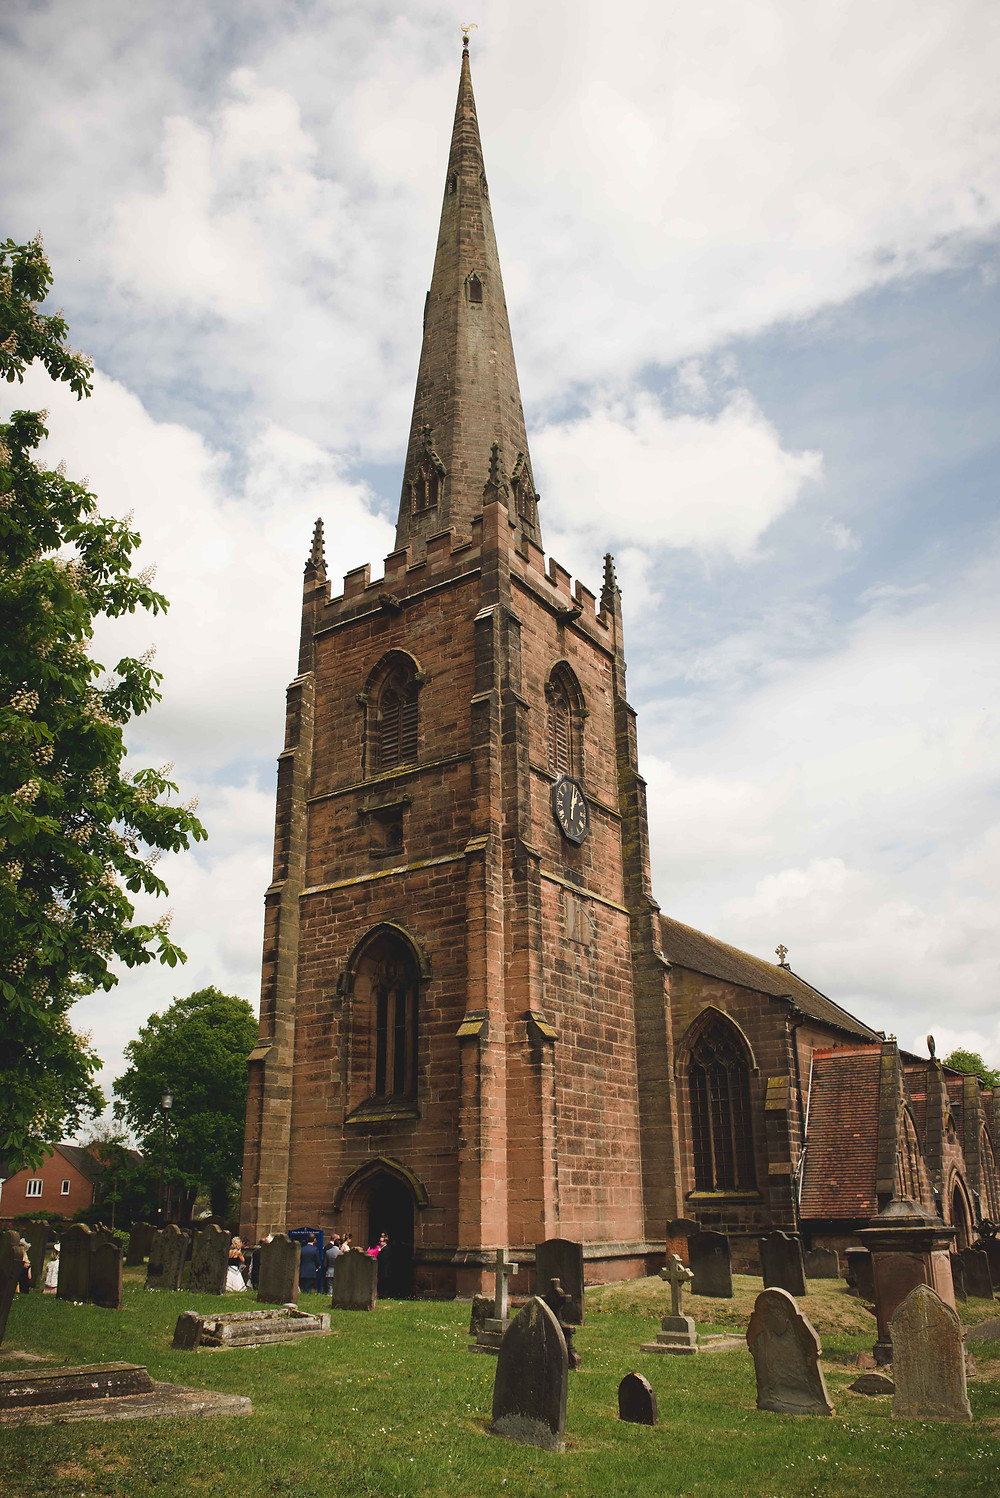 St Mark's Church in Brewood, Staffordshire wedding day